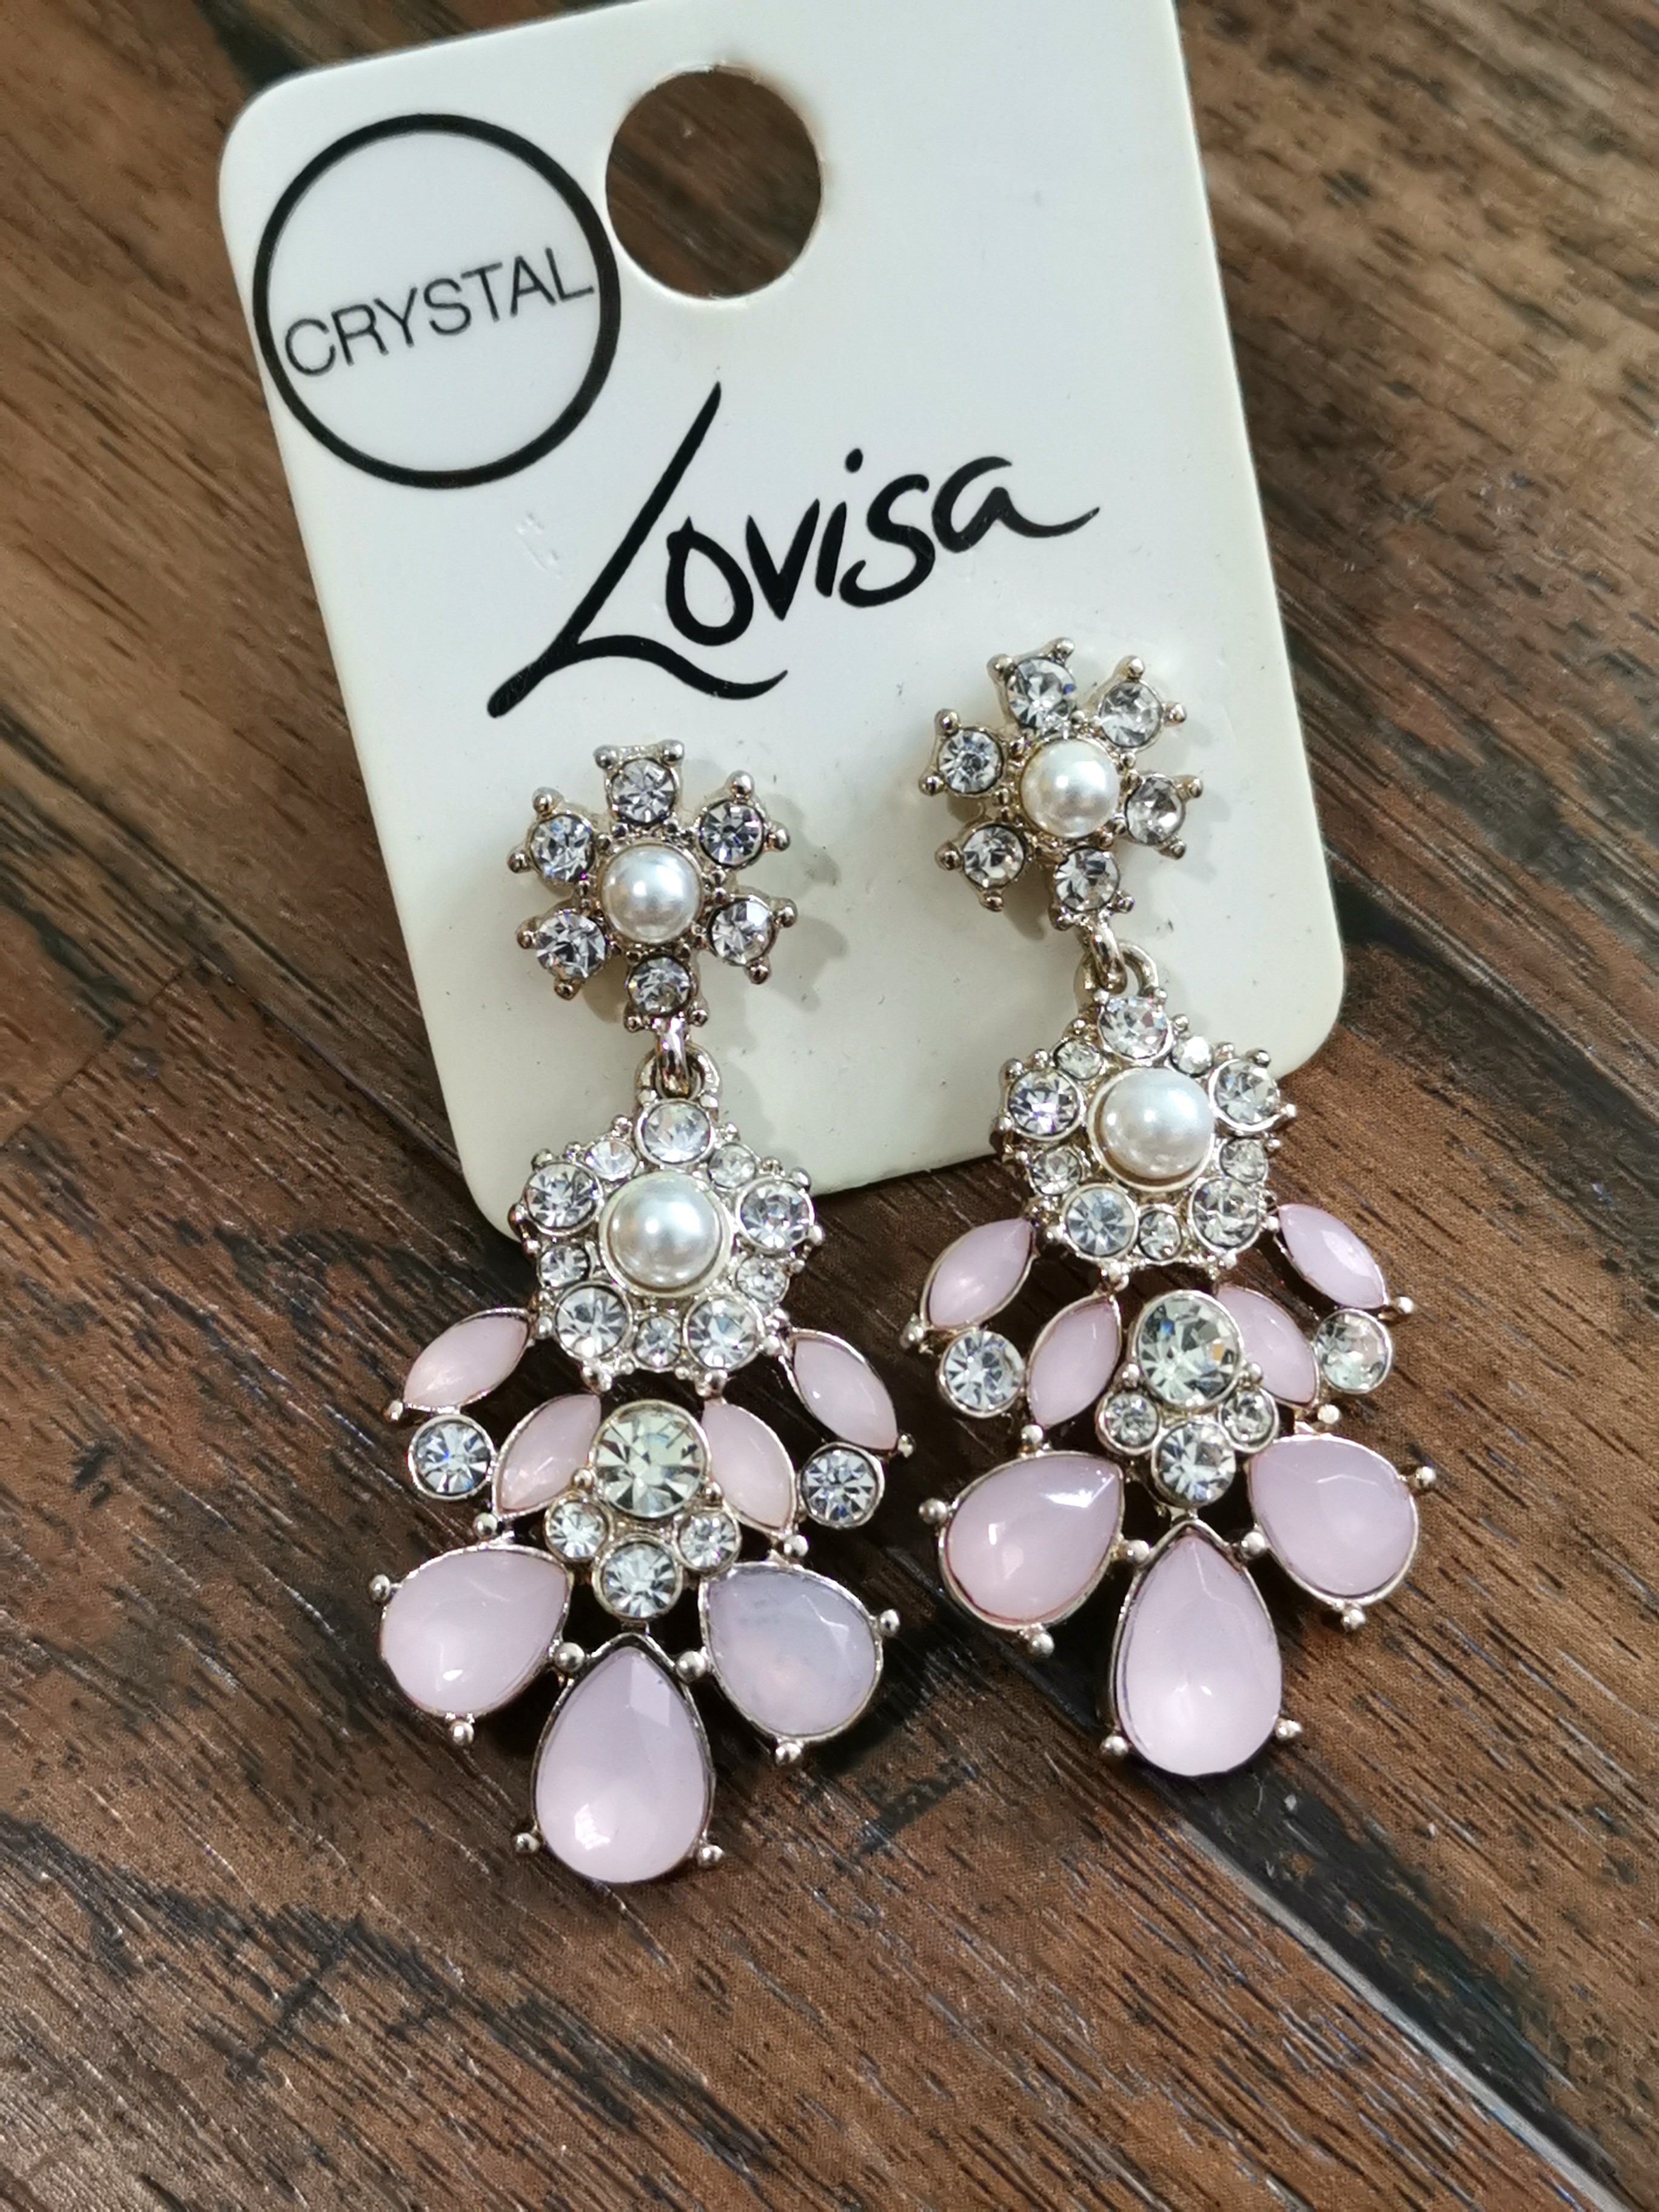 d80a134a462068 Brand new Lovisa Pink crystal and pearl drop glam luxe statement earrings  bohemian pastel Girly boho, Women's Fashion, Jewellery, Earrings on  Carousell